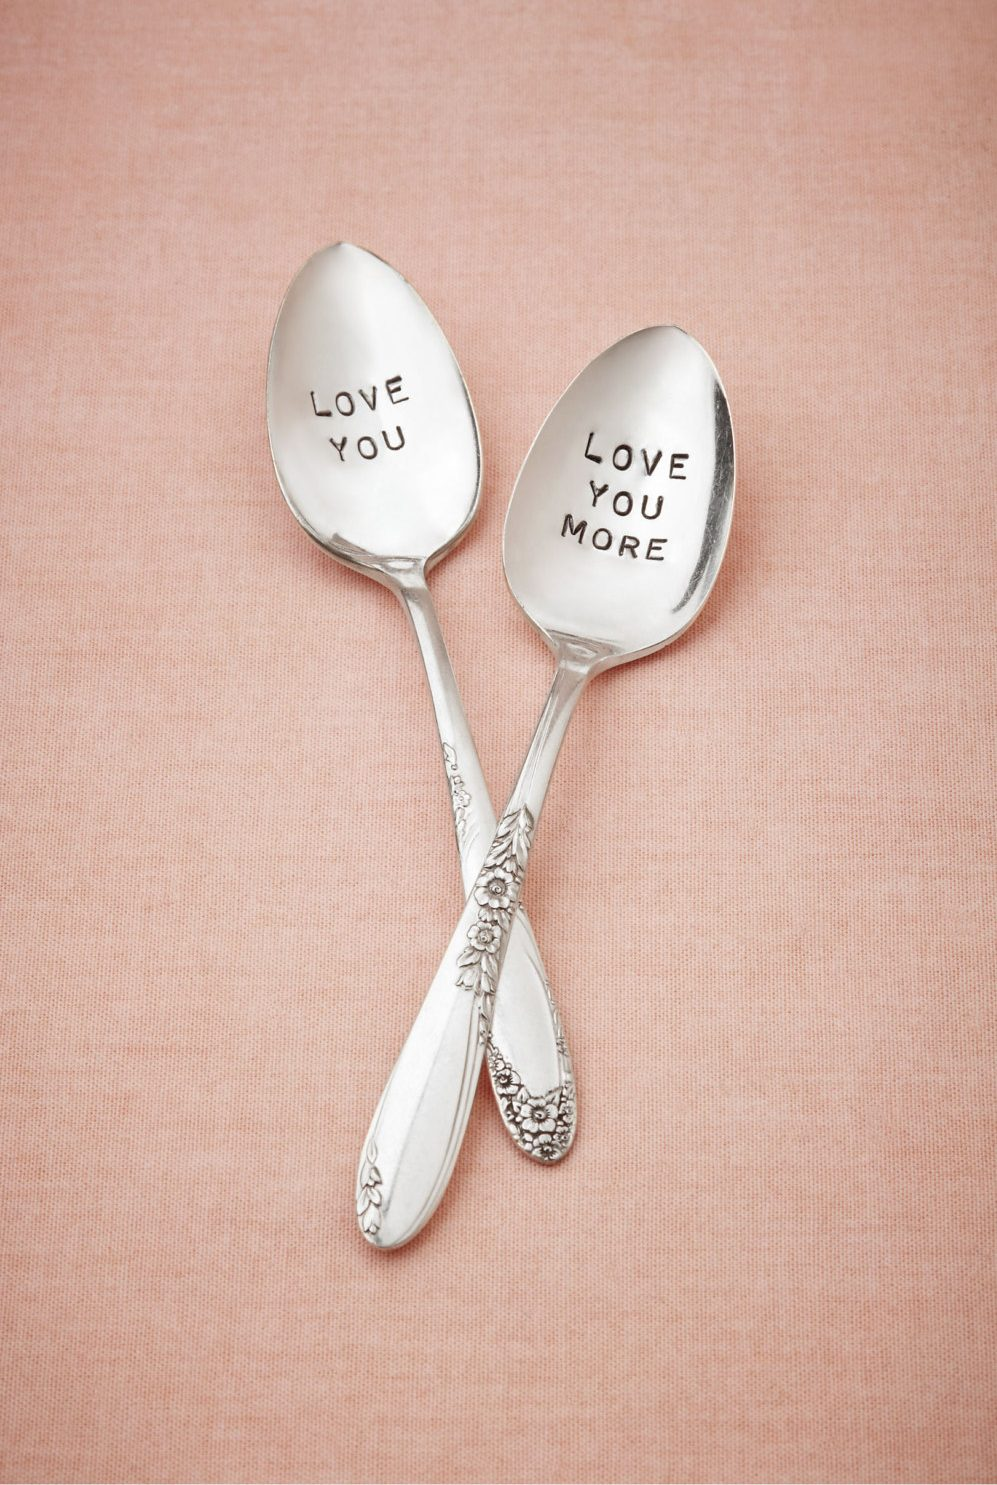 love you love you more spoons by woodenhive